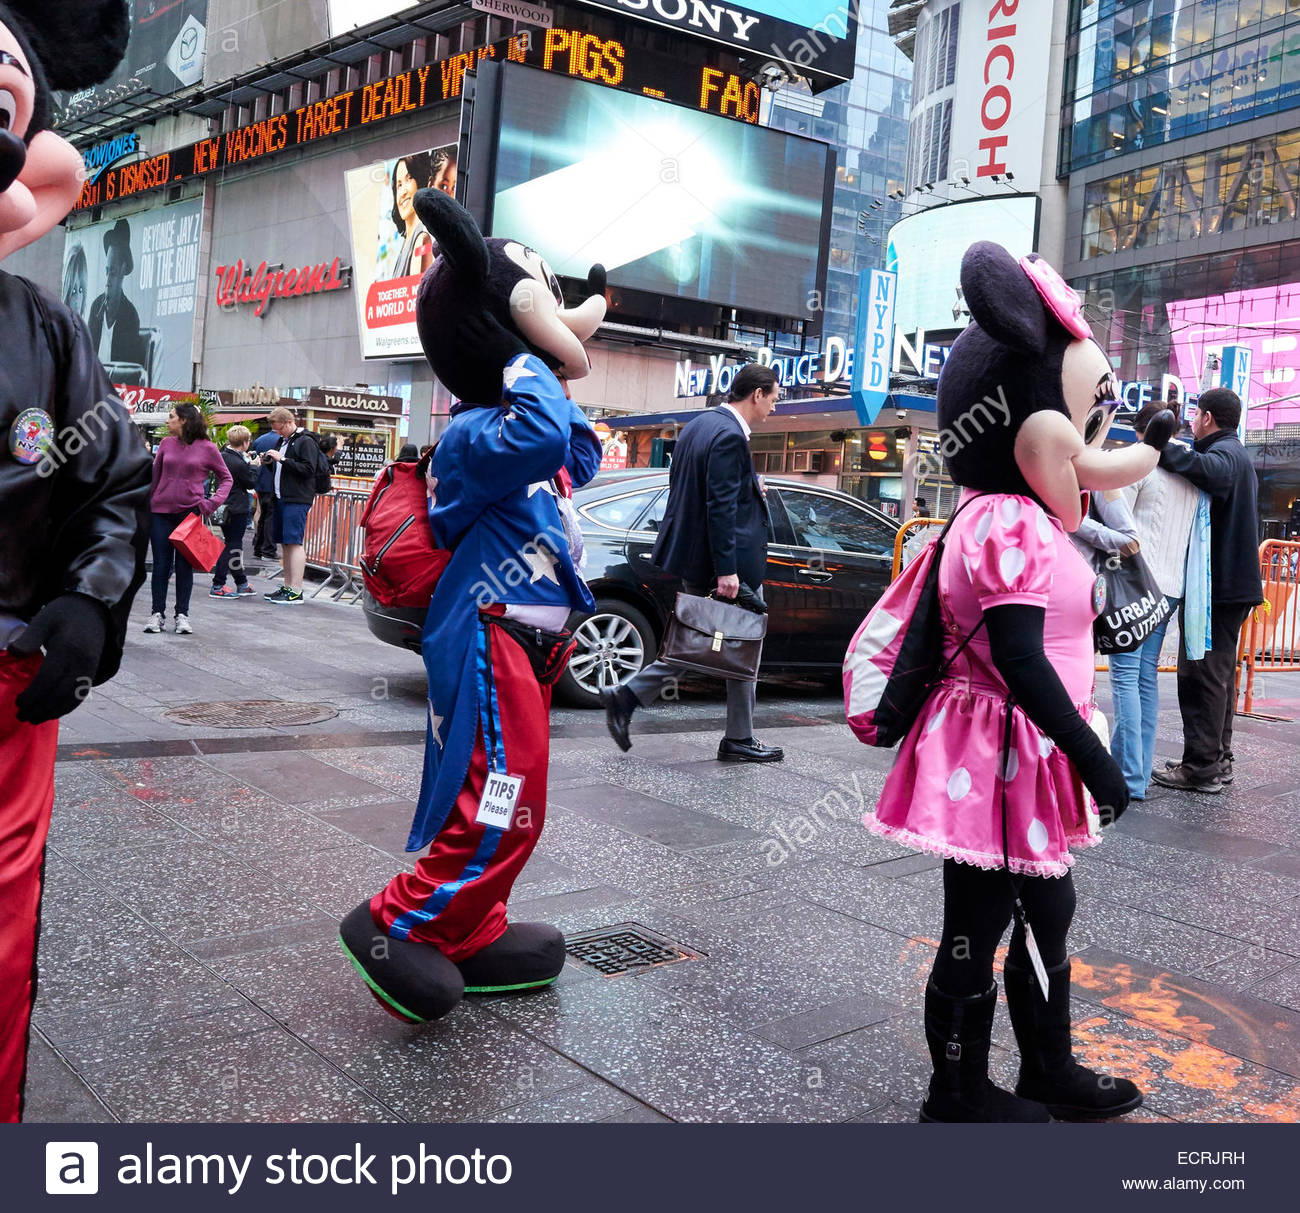 performers dressed up as cartoon characters who pose for photographs